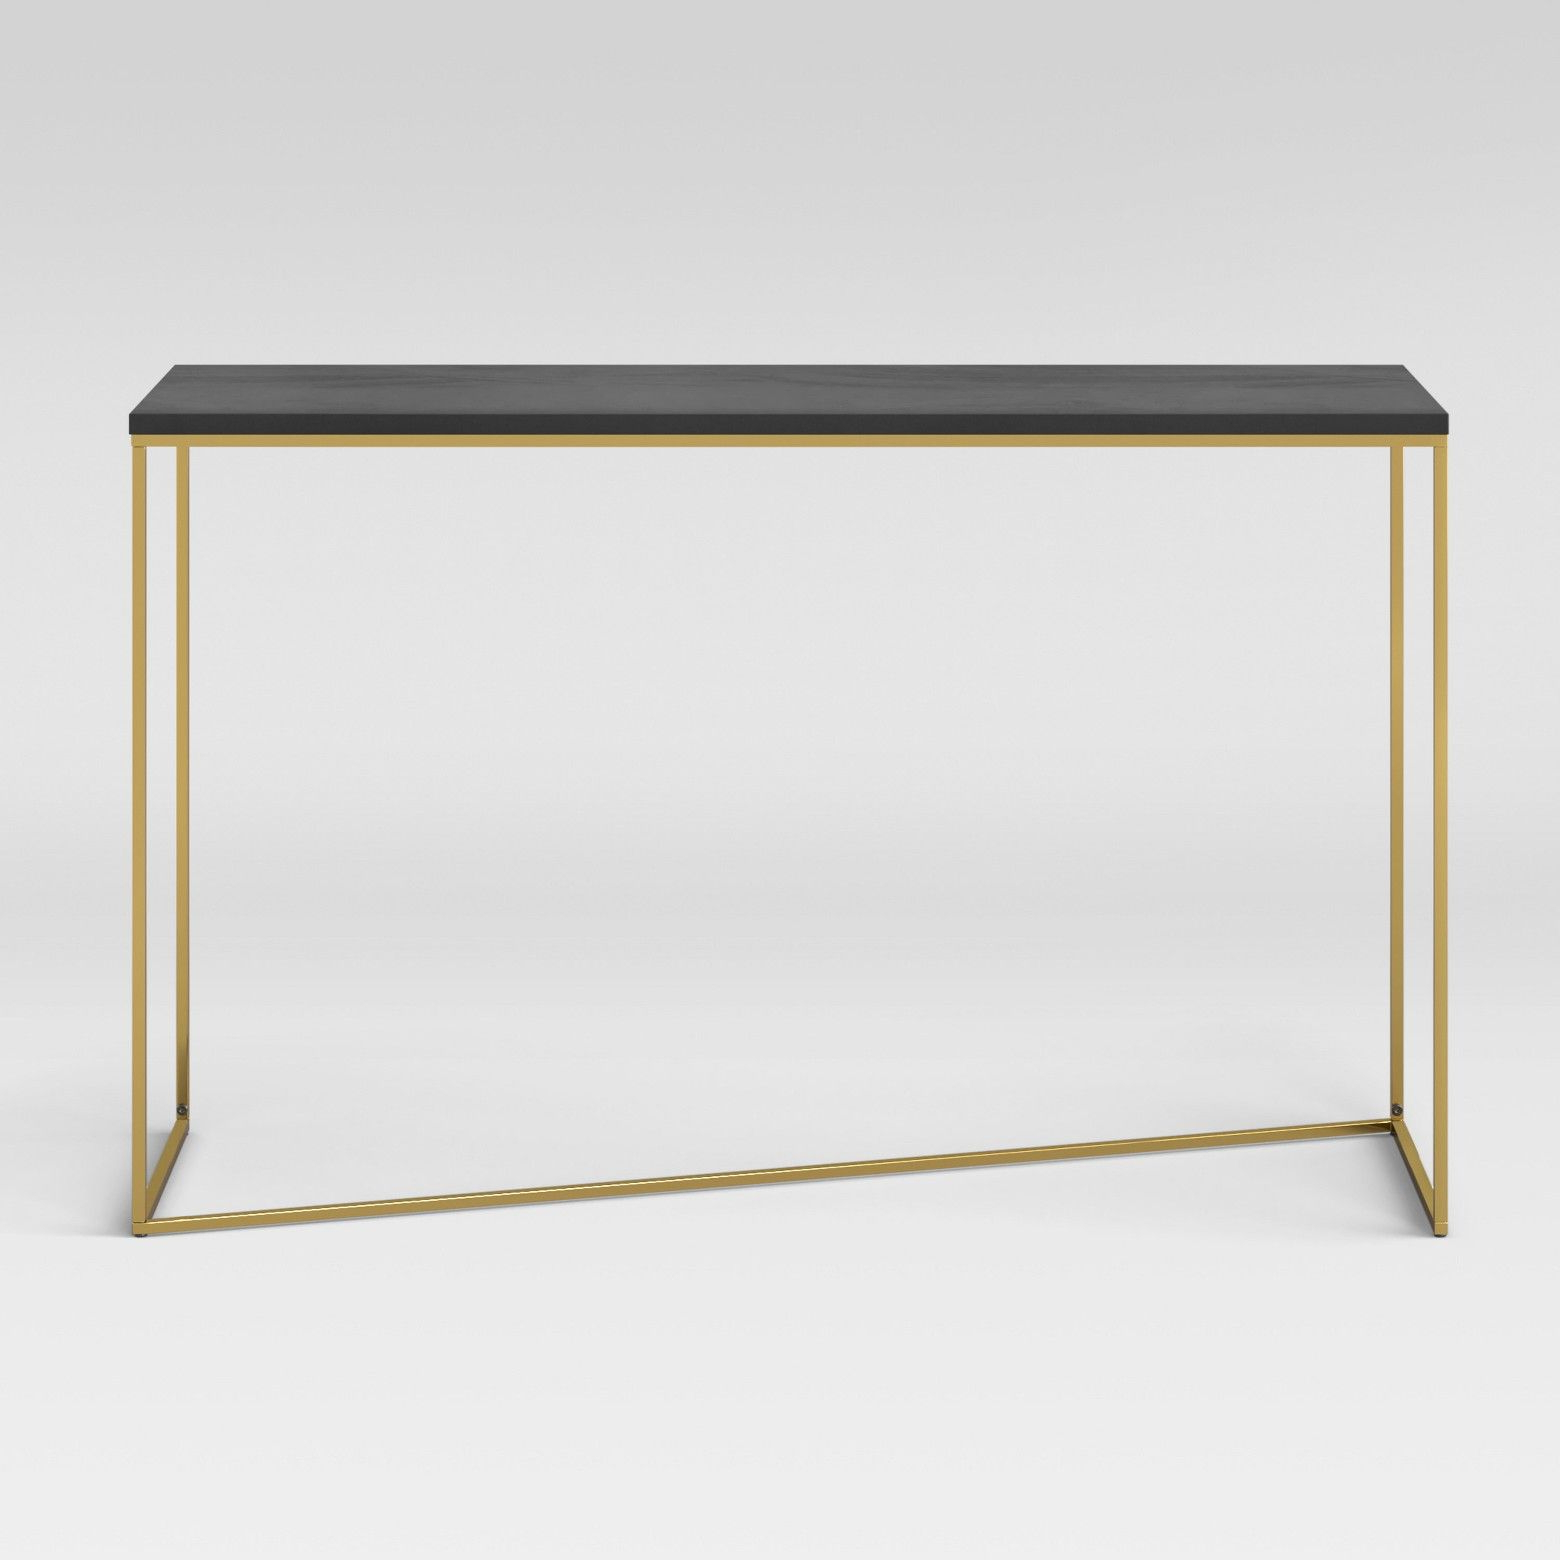 Favorite Elke Marble Console Tables With Brass Base Intended For The Sollerod Console Table Brass And Black From Project  (View 12 of 20)